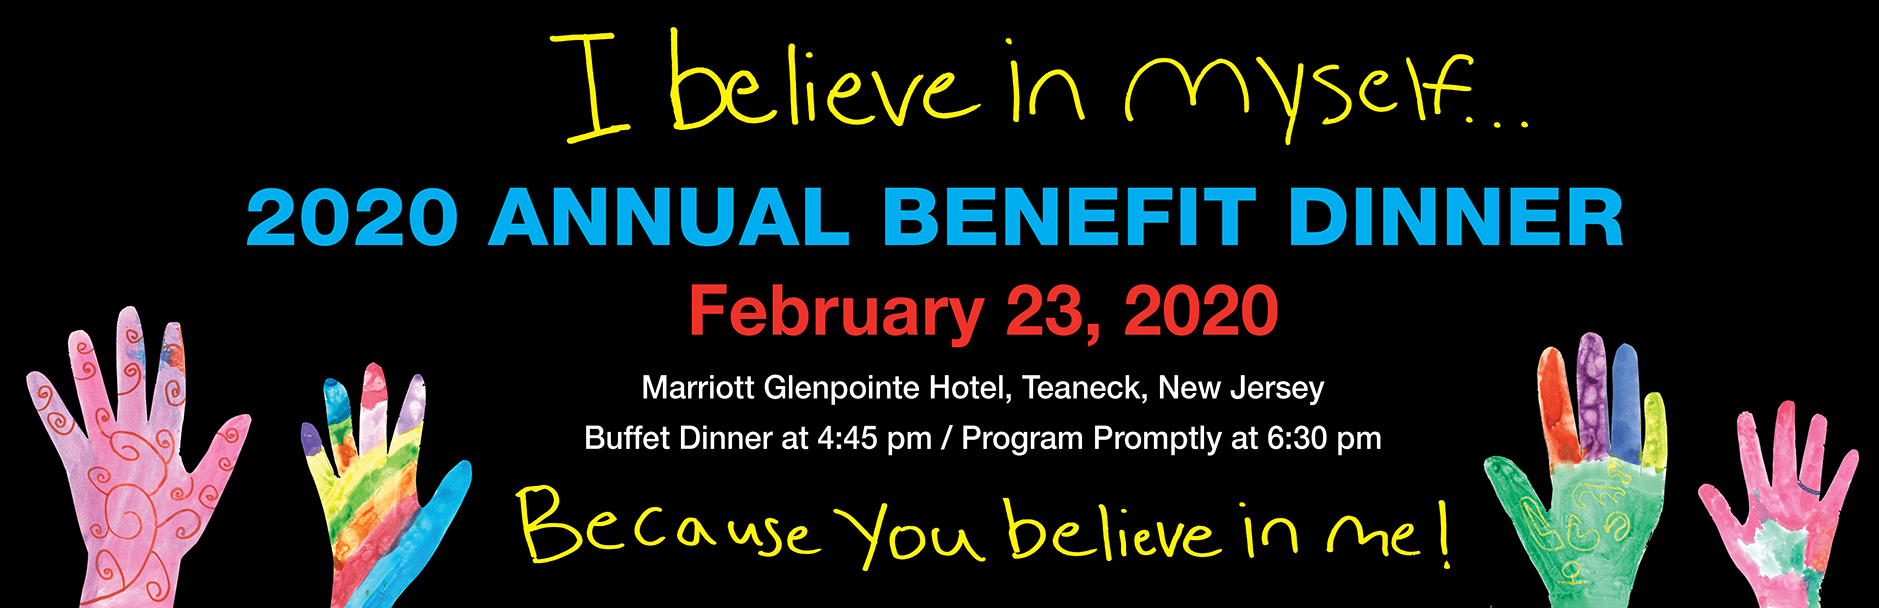 2020 Annual Benefit Dinner